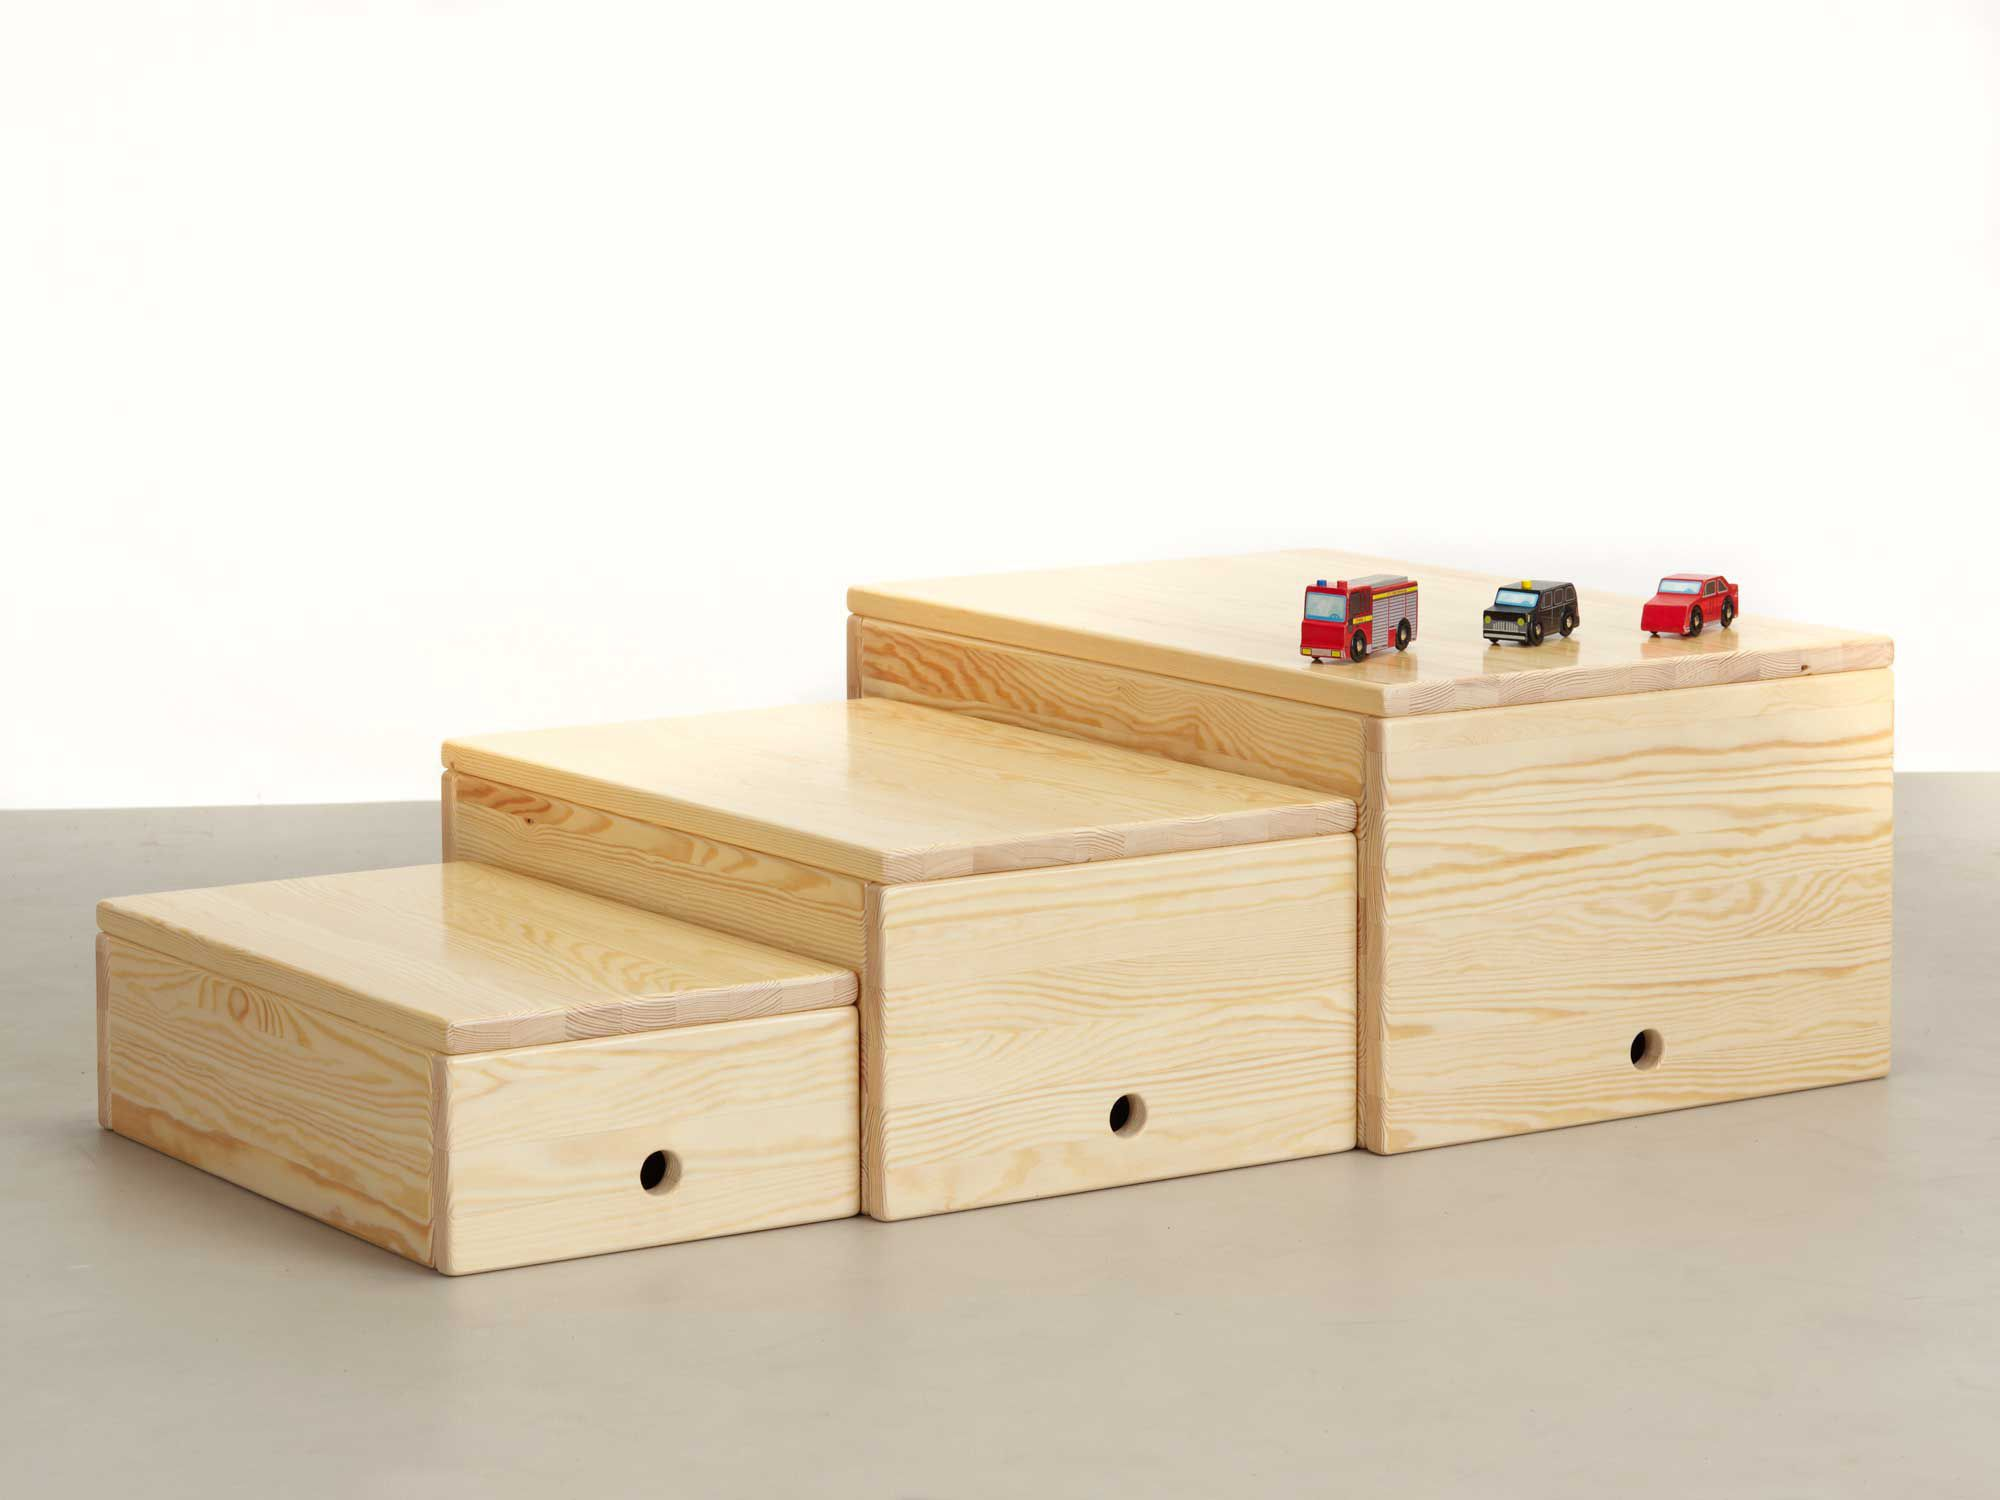 Prodigious Wooden Toy Box Wooden Toy Box Wooden Toy Box Albera Llar Ergokids Wooden Toy Box Bench Seat Wooden Toy Box Kit houzz 01 Wooden Toy Box